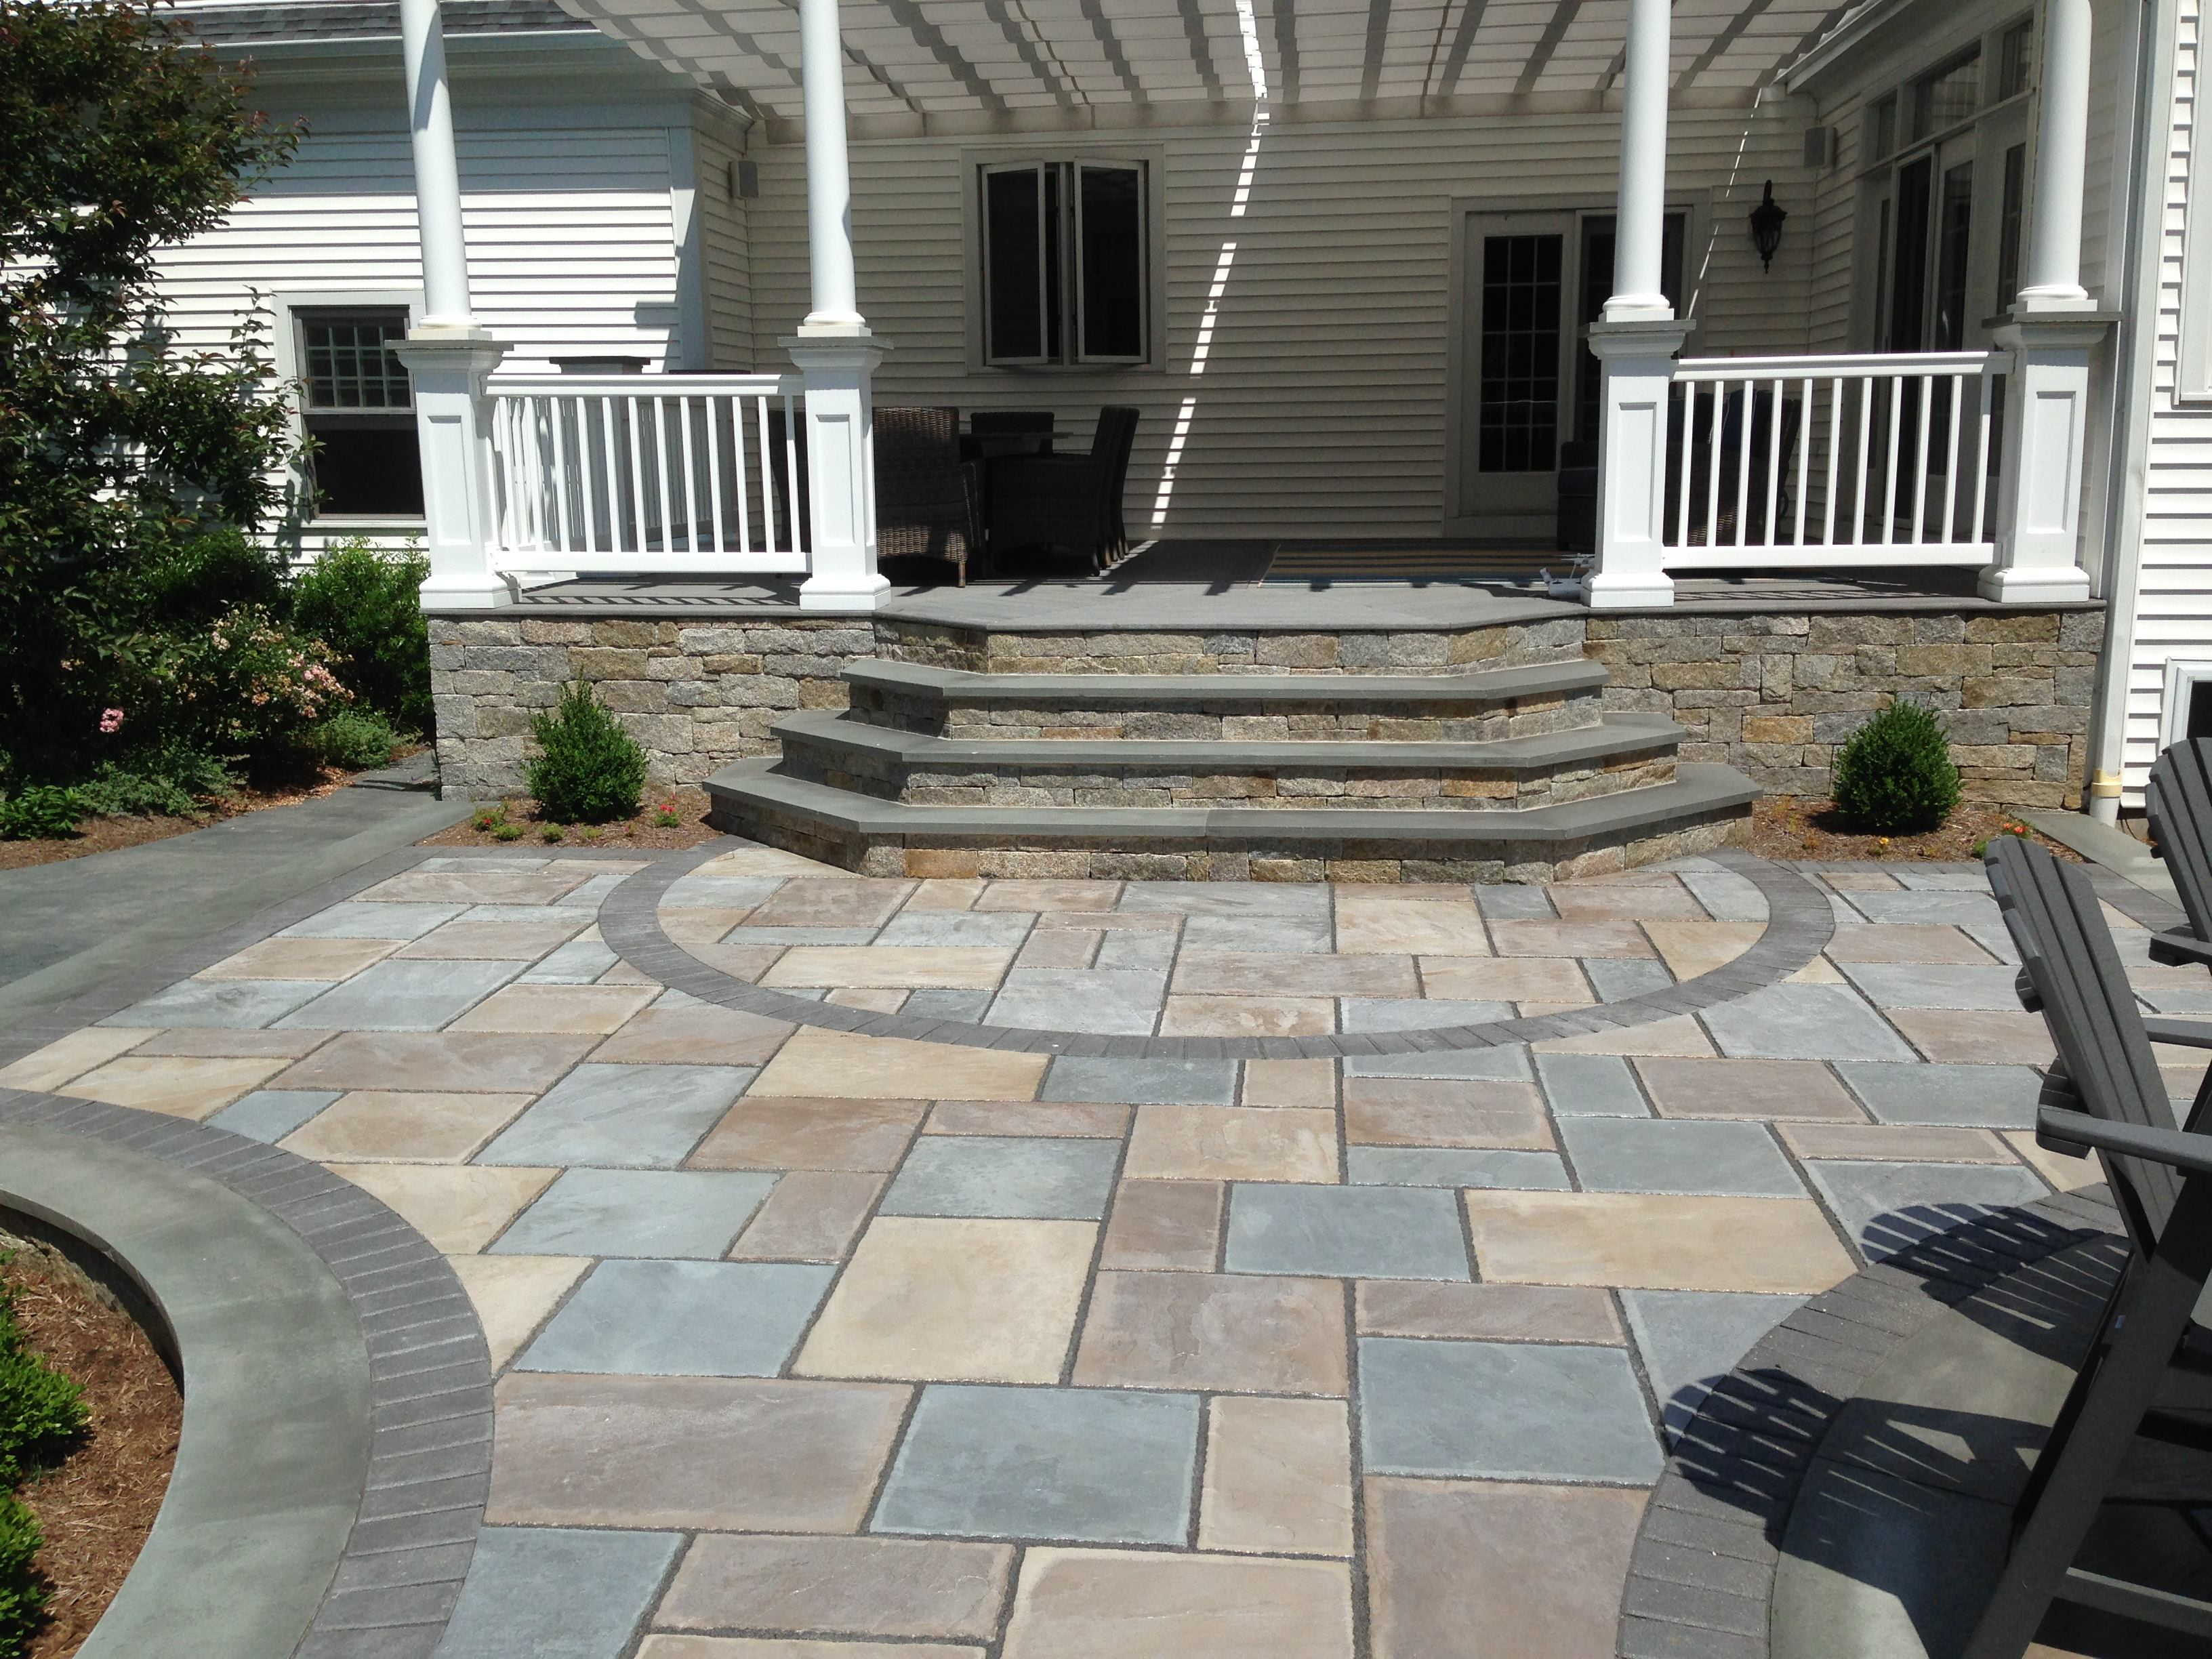 Steps|Refacing|Veneers|Front Stoop|Portfolio|Torrison ... on Small Backyard Stone Patio Ideas id=72549